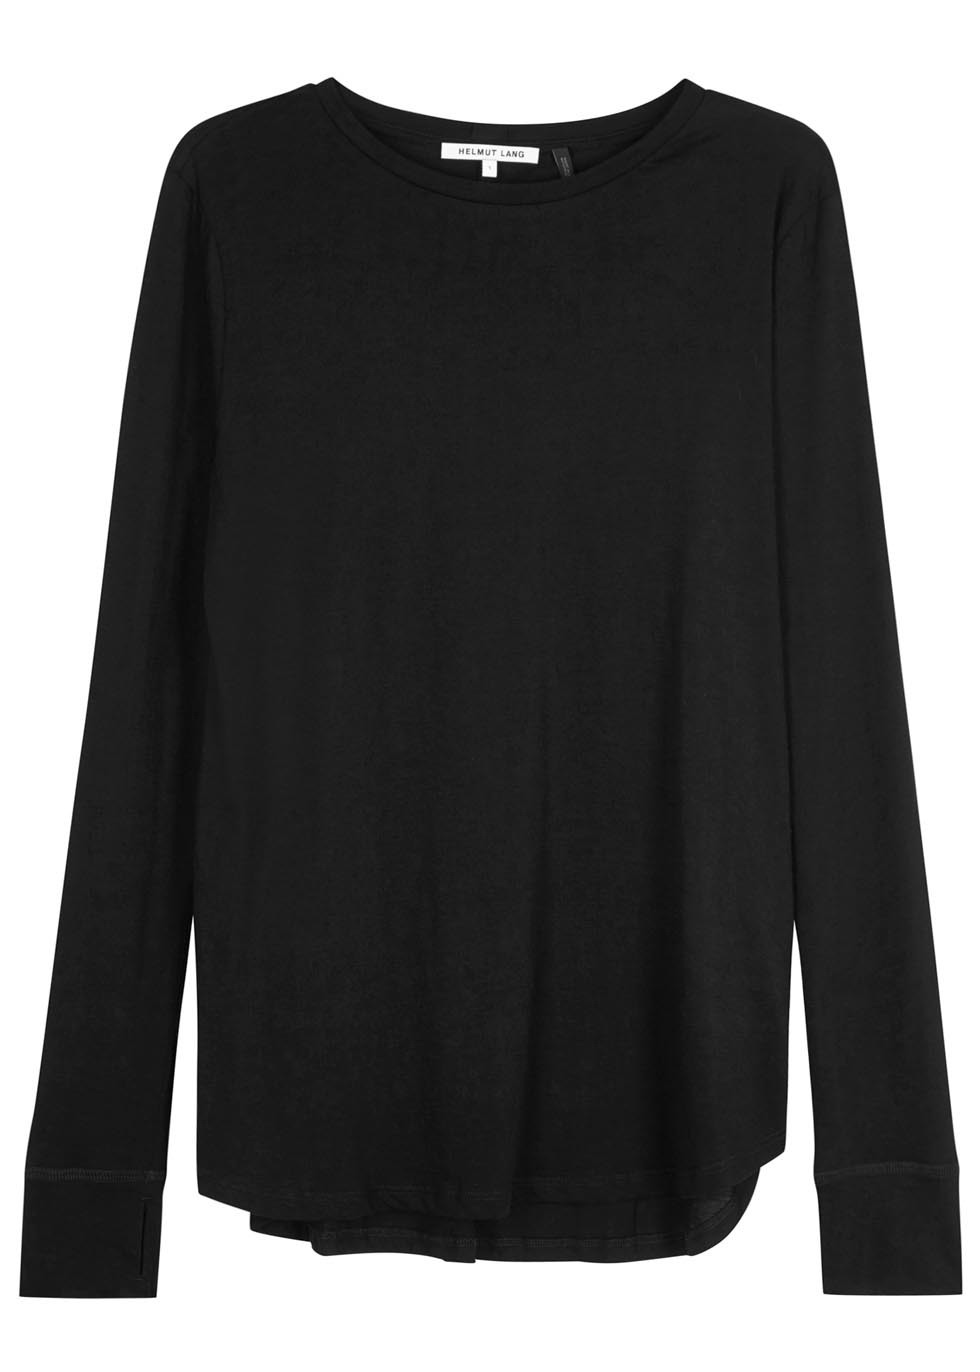 Black Cotton Blend Top - neckline: round neck; pattern: plain; predominant colour: black; occasions: casual, work, creative work; length: standard; style: top; fibres: cotton - mix; fit: loose; sleeve length: long sleeve; sleeve style: standard; pattern type: fabric; texture group: jersey - stretchy/drapey; season: a/w 2015; wardrobe: basic